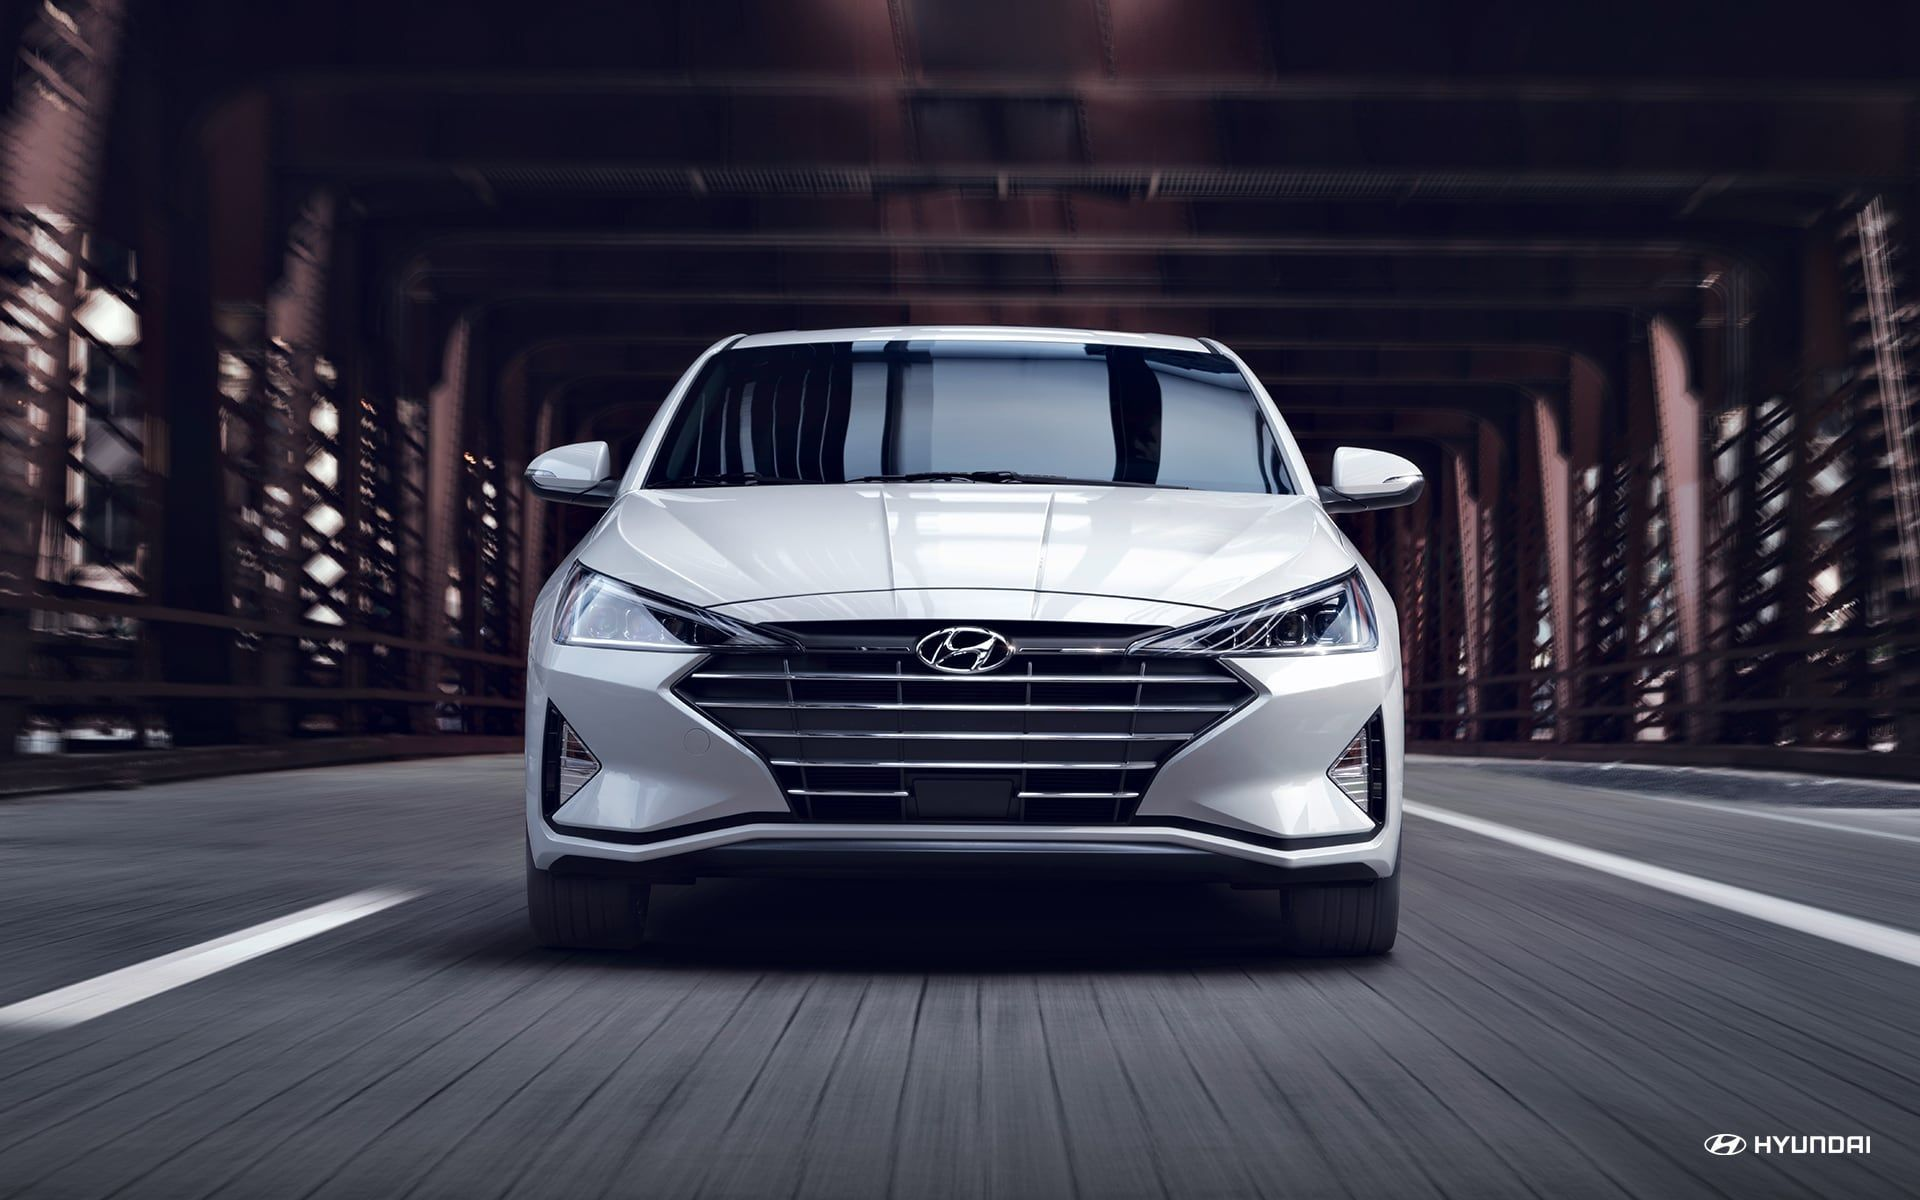 The New 2019 Hyundai Elantra